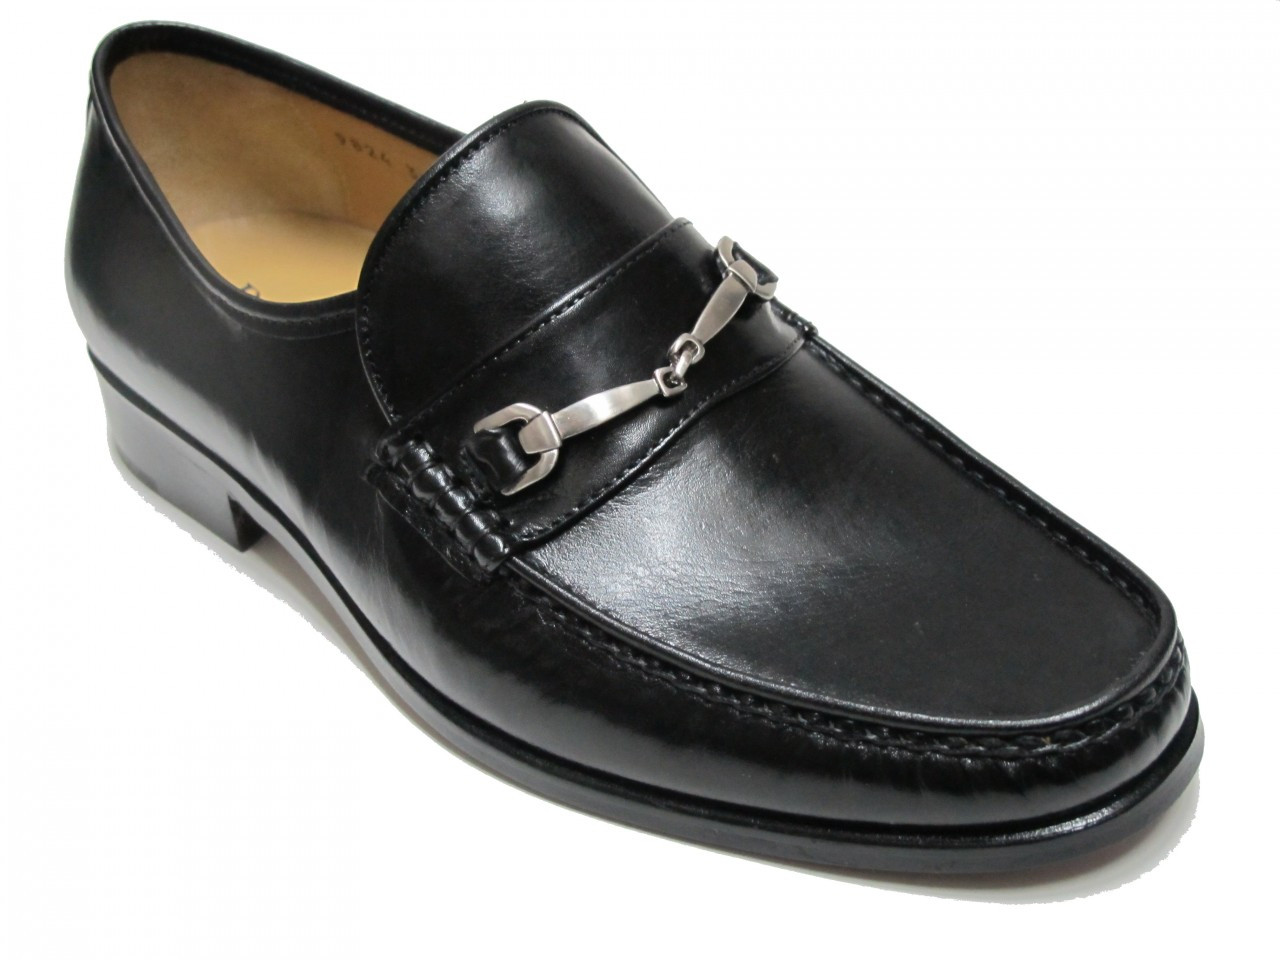 Davinci Menu0026#39;s Slip On Loafer Dressy Shoes 9824 Black And Brown